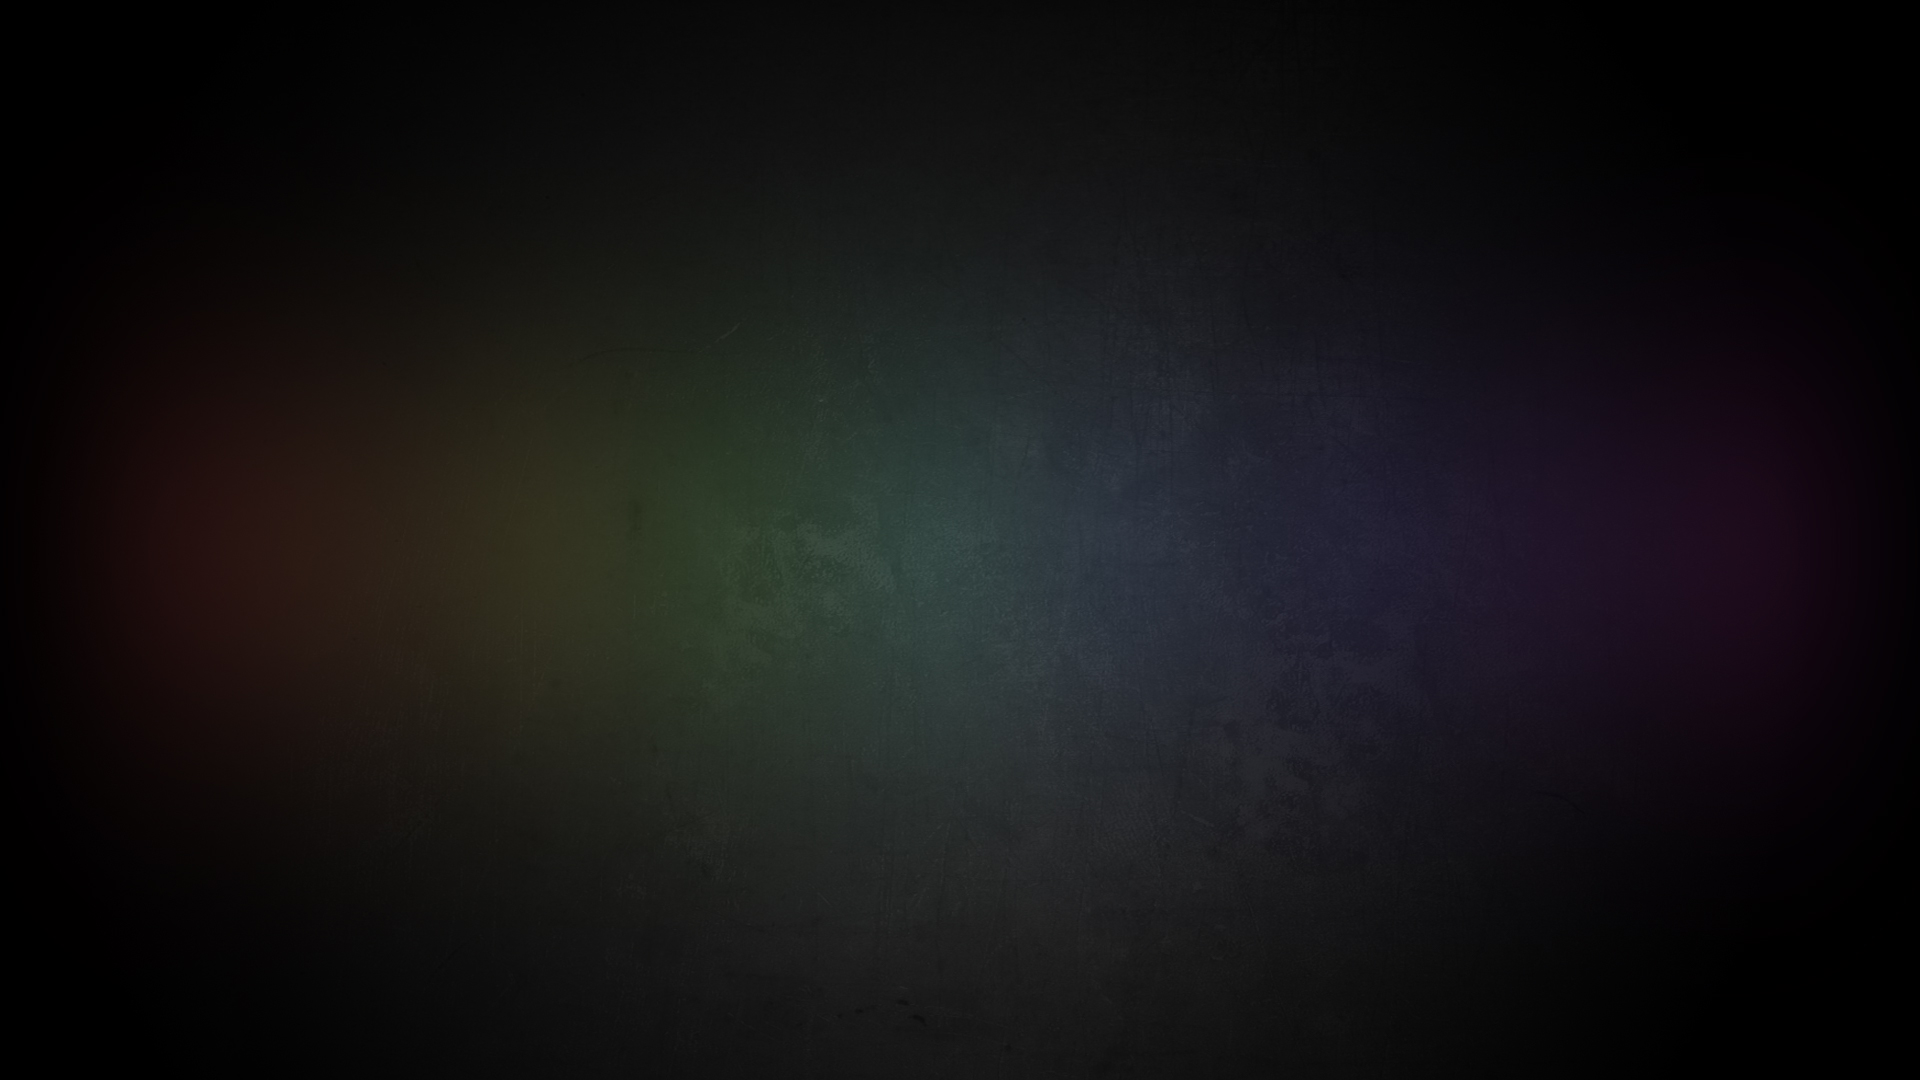 Dark Backgrounds Group - Cool Dark Colors Background - HD Wallpaper